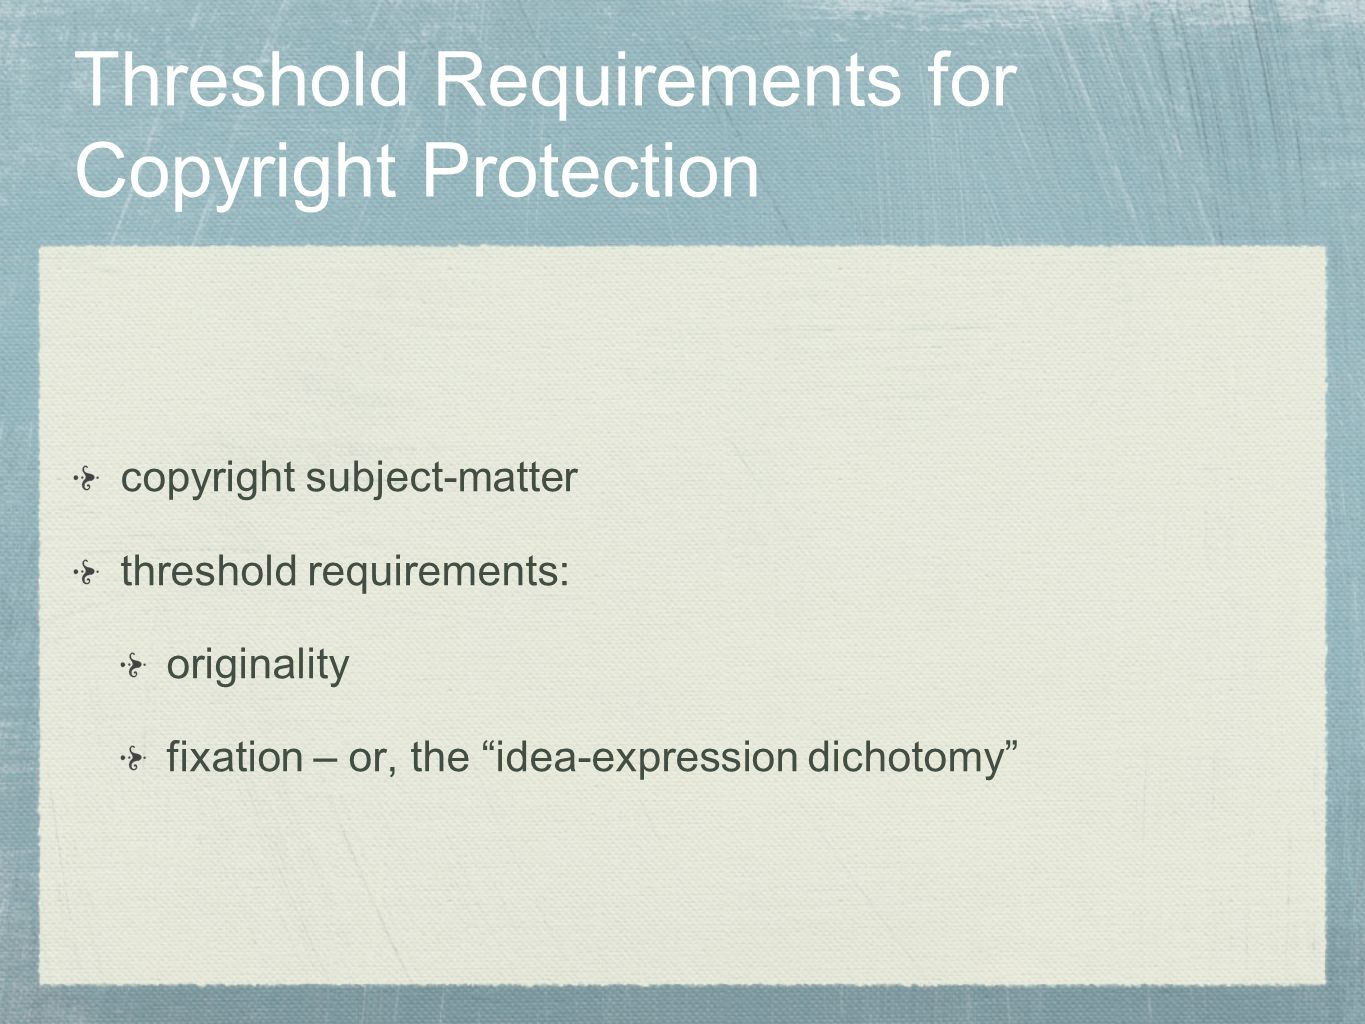 Threshold Requirements for Copyright Protection